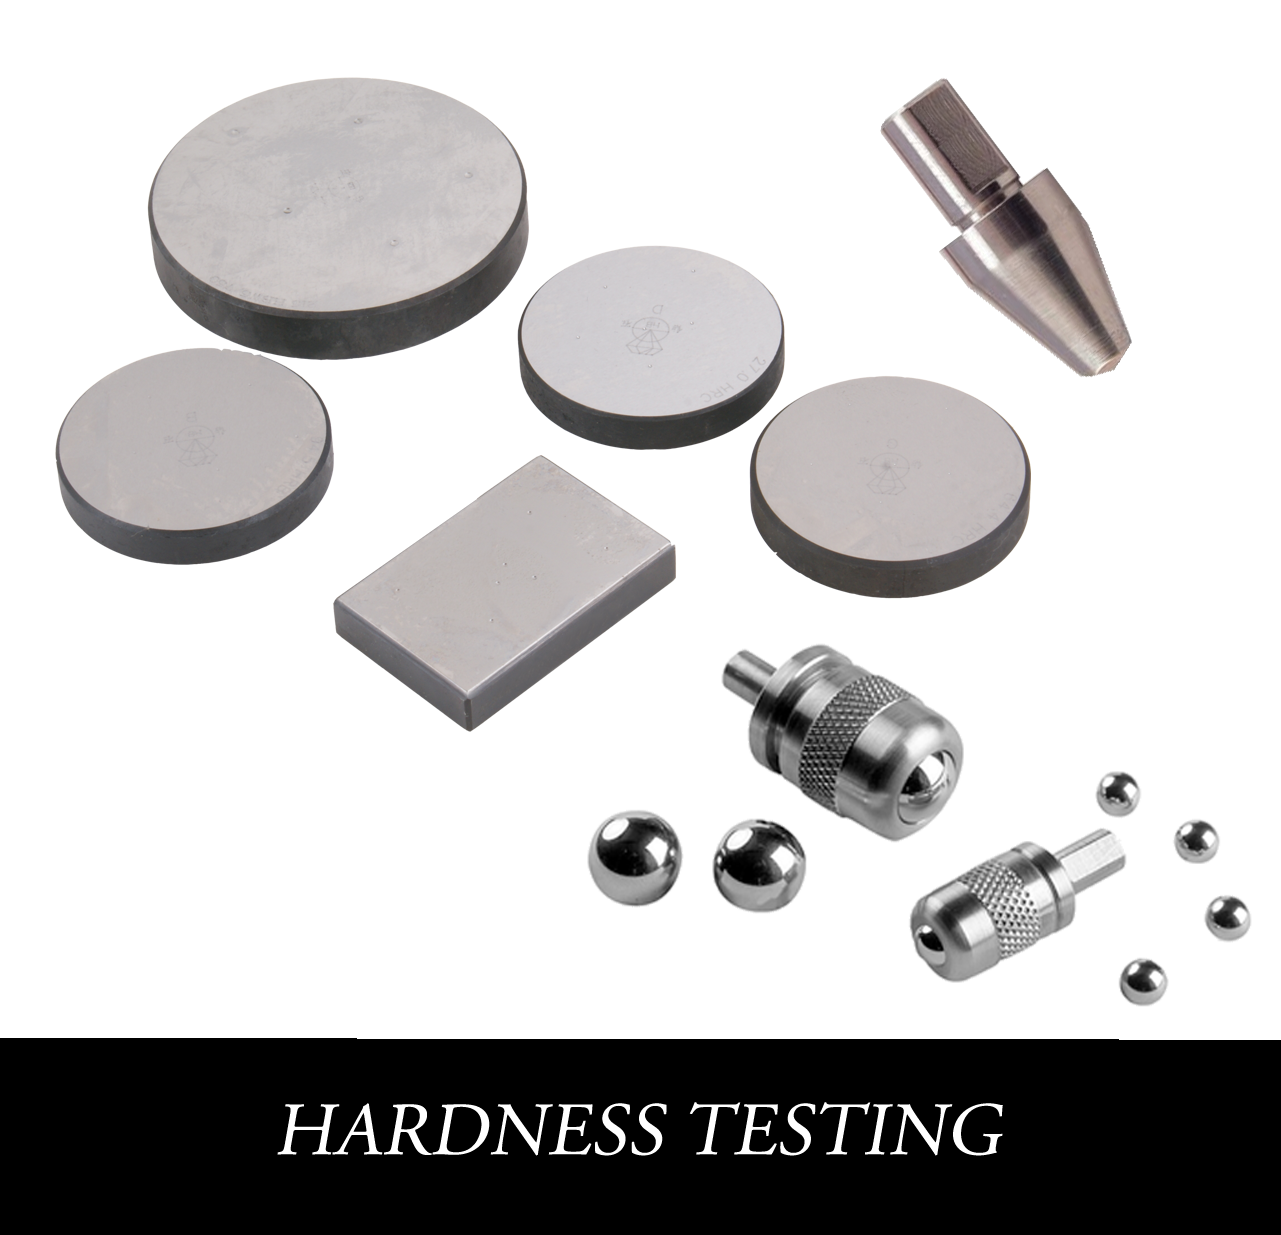 Metallographic hardness testing consumables